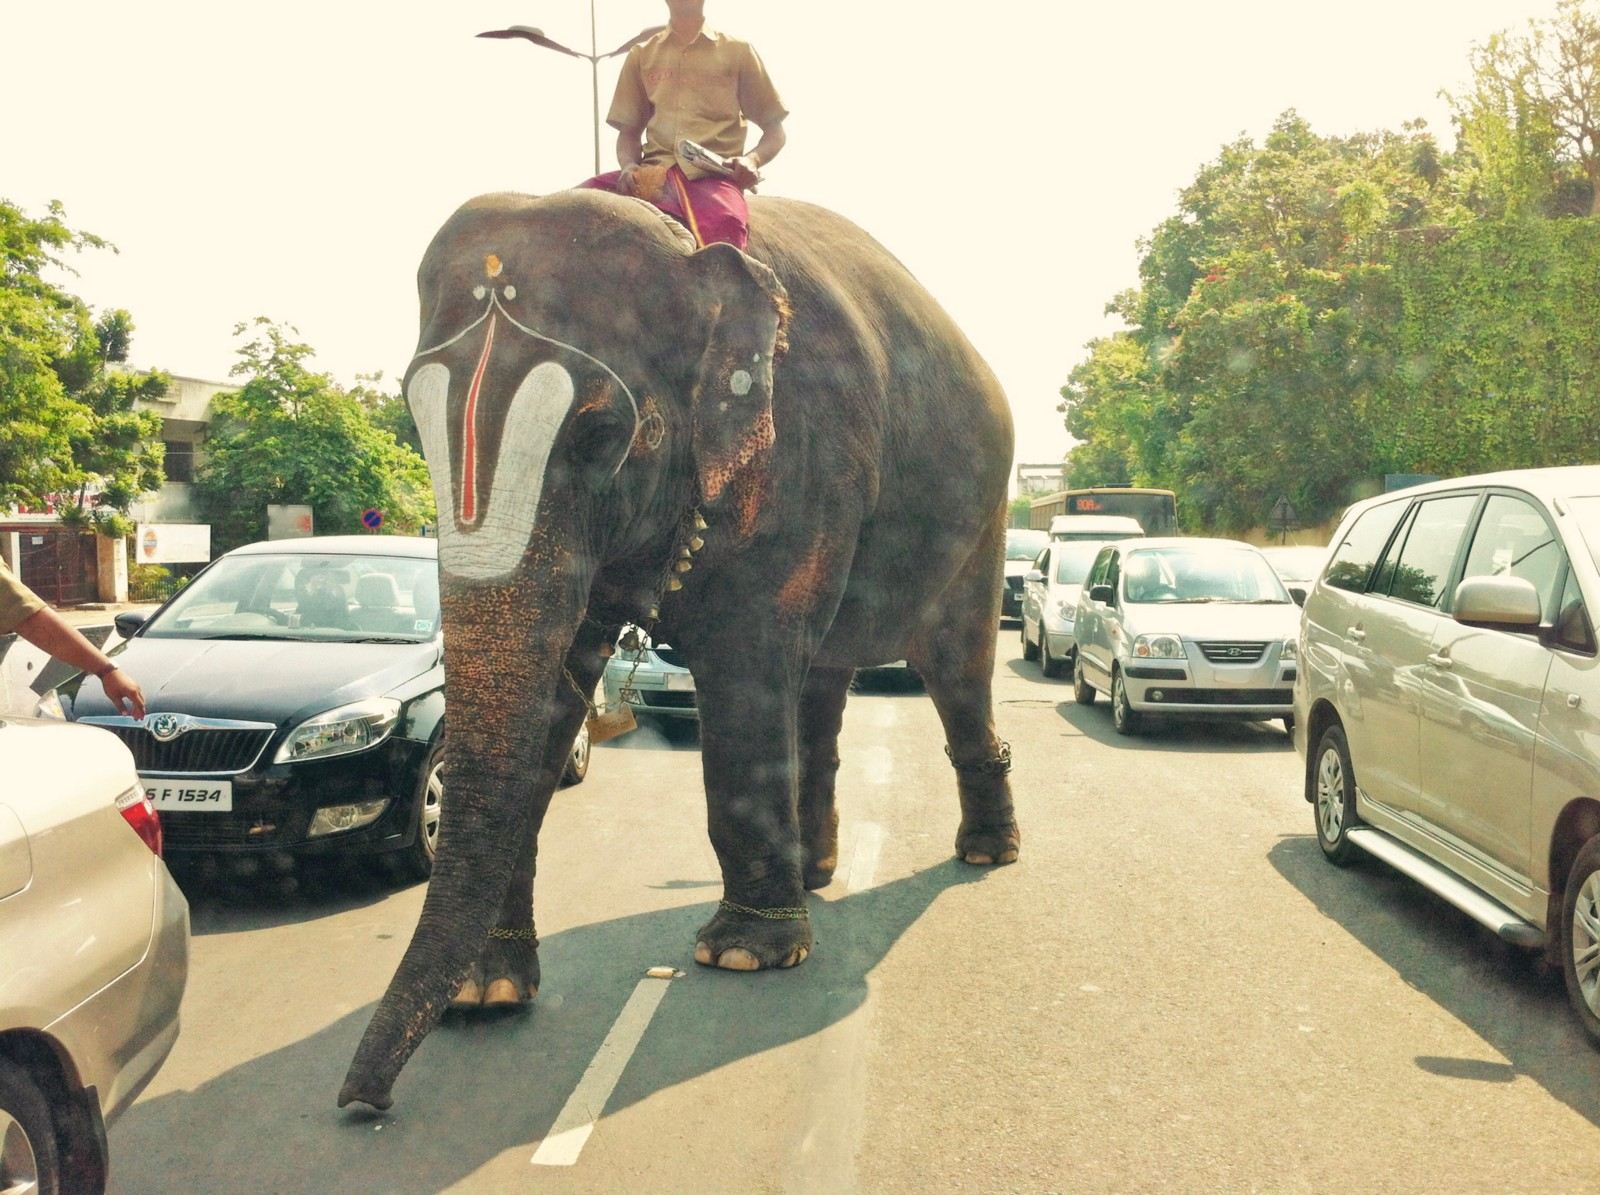 /the-invisible-elephant-in-my-photos-2ac49f41378a feature image